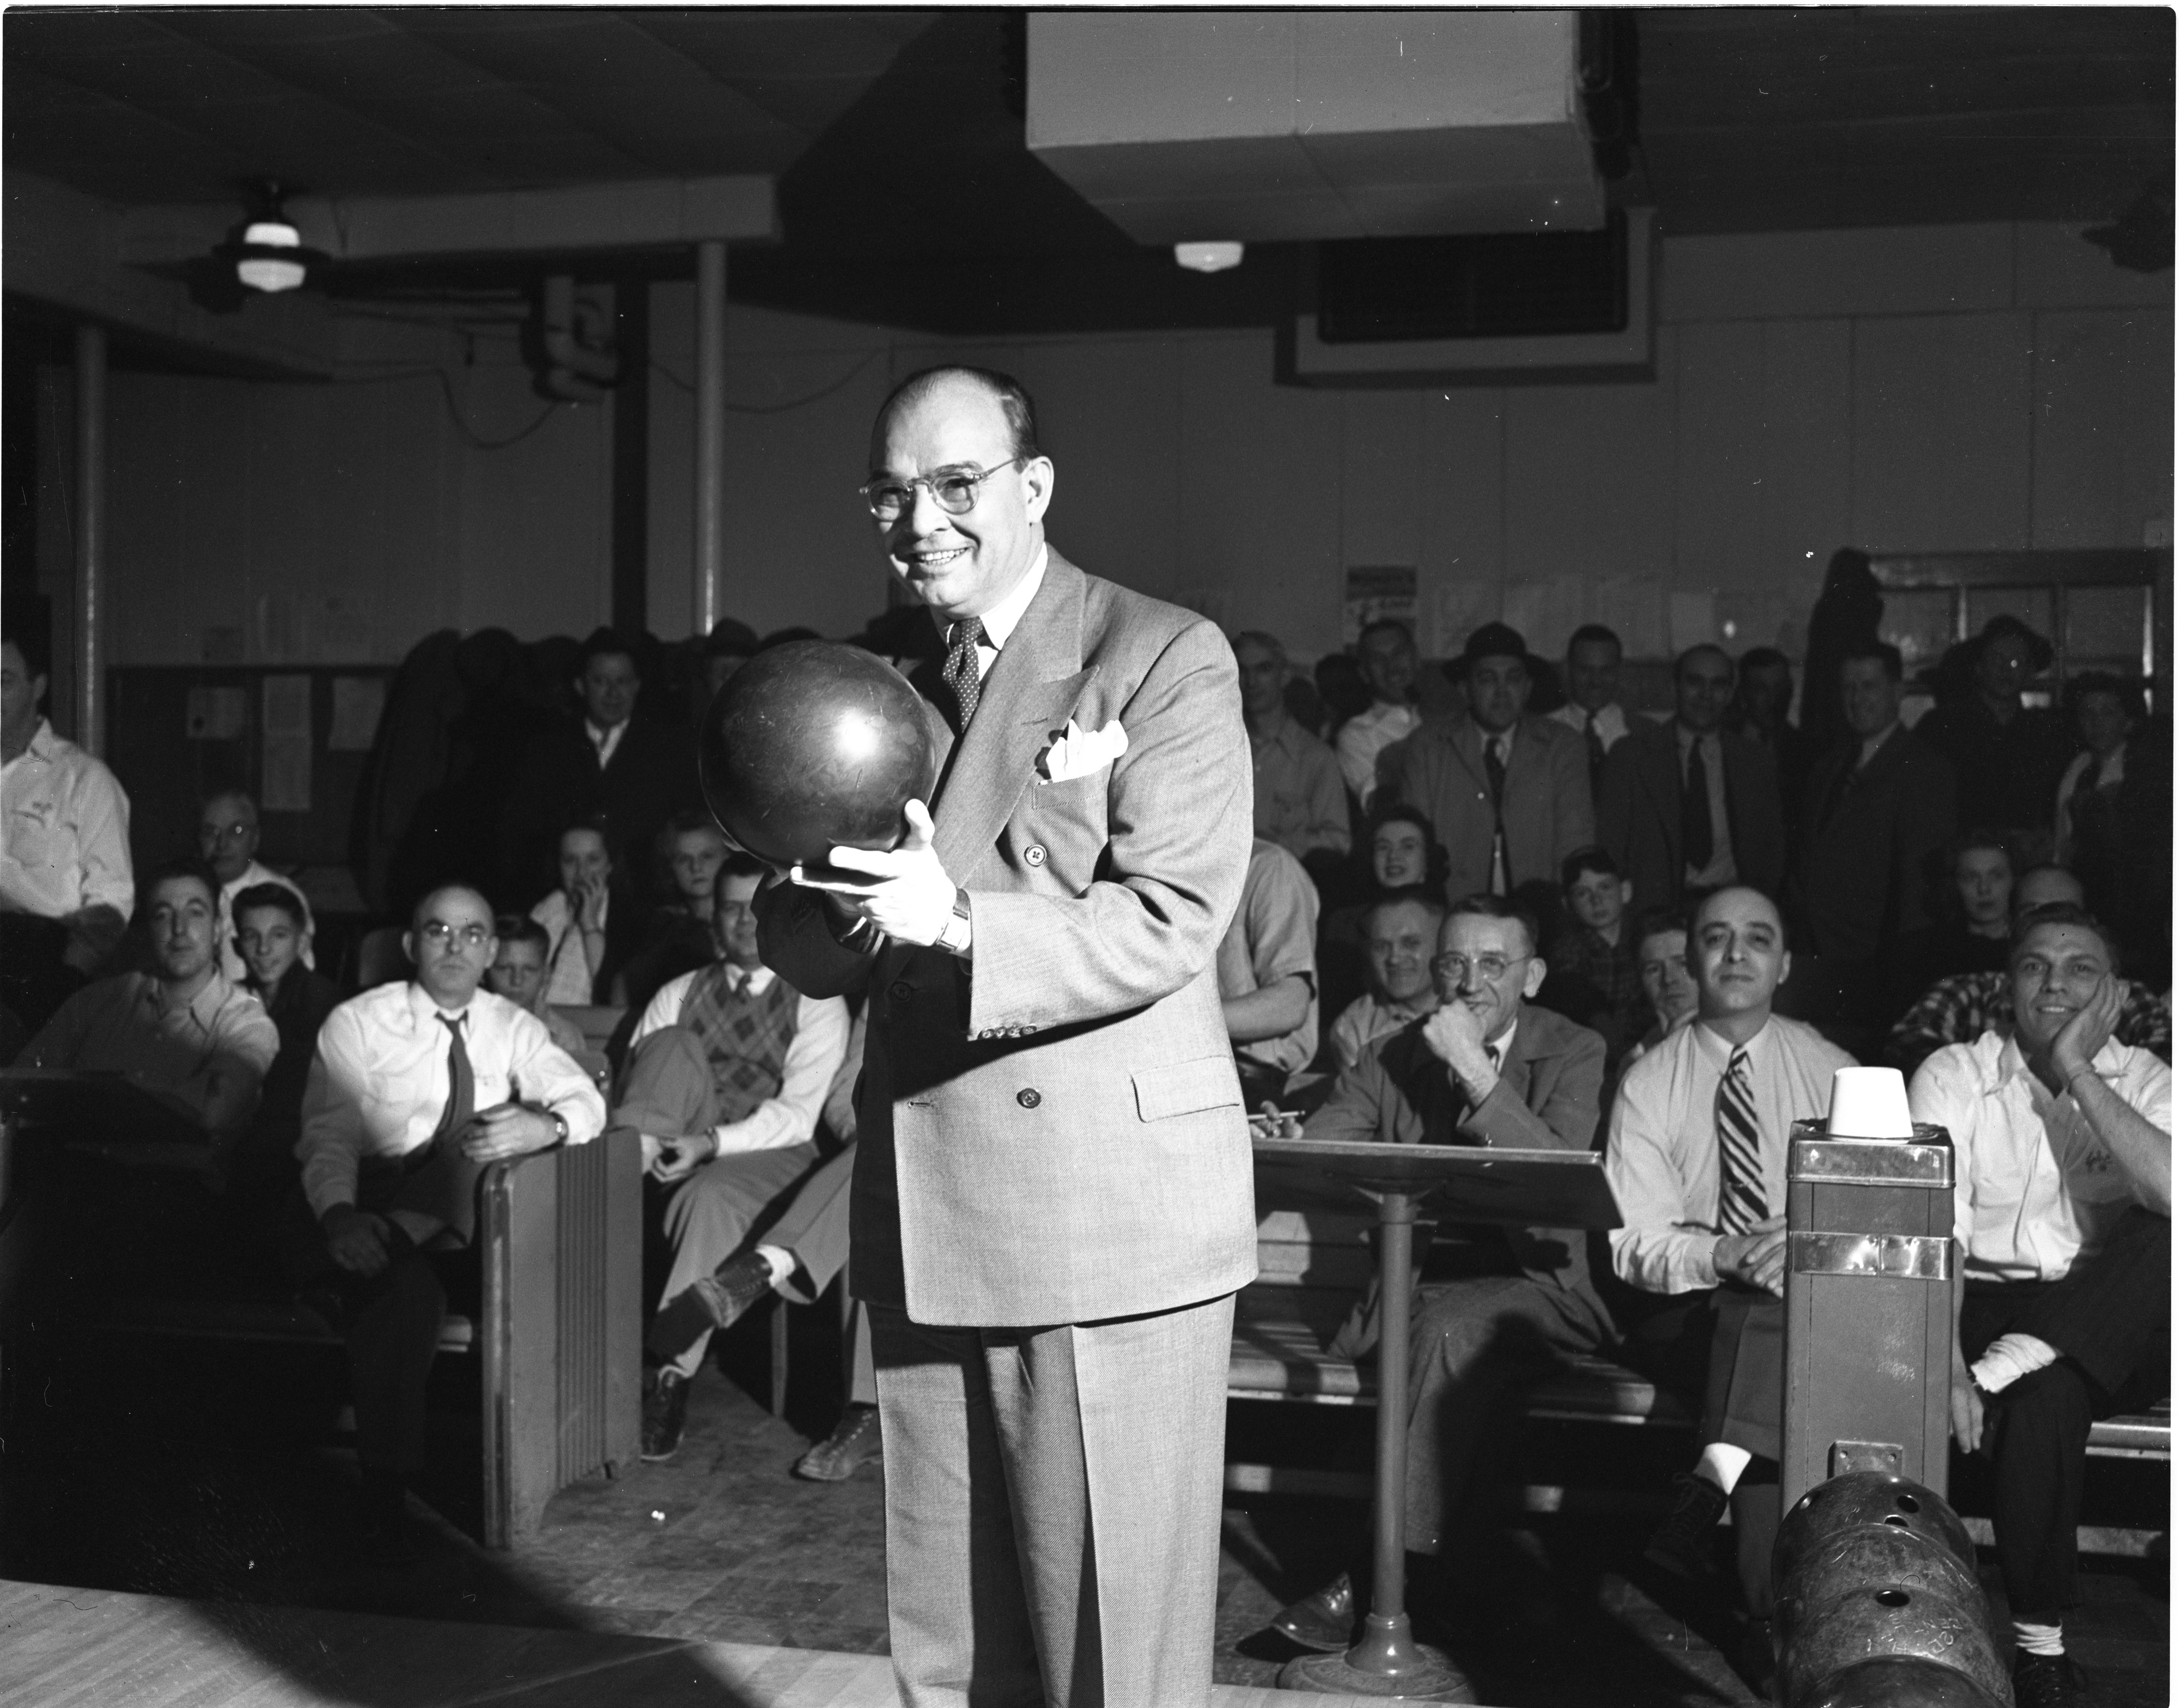 Mayor Brown Opens Bowling Tournament, March 1947 image